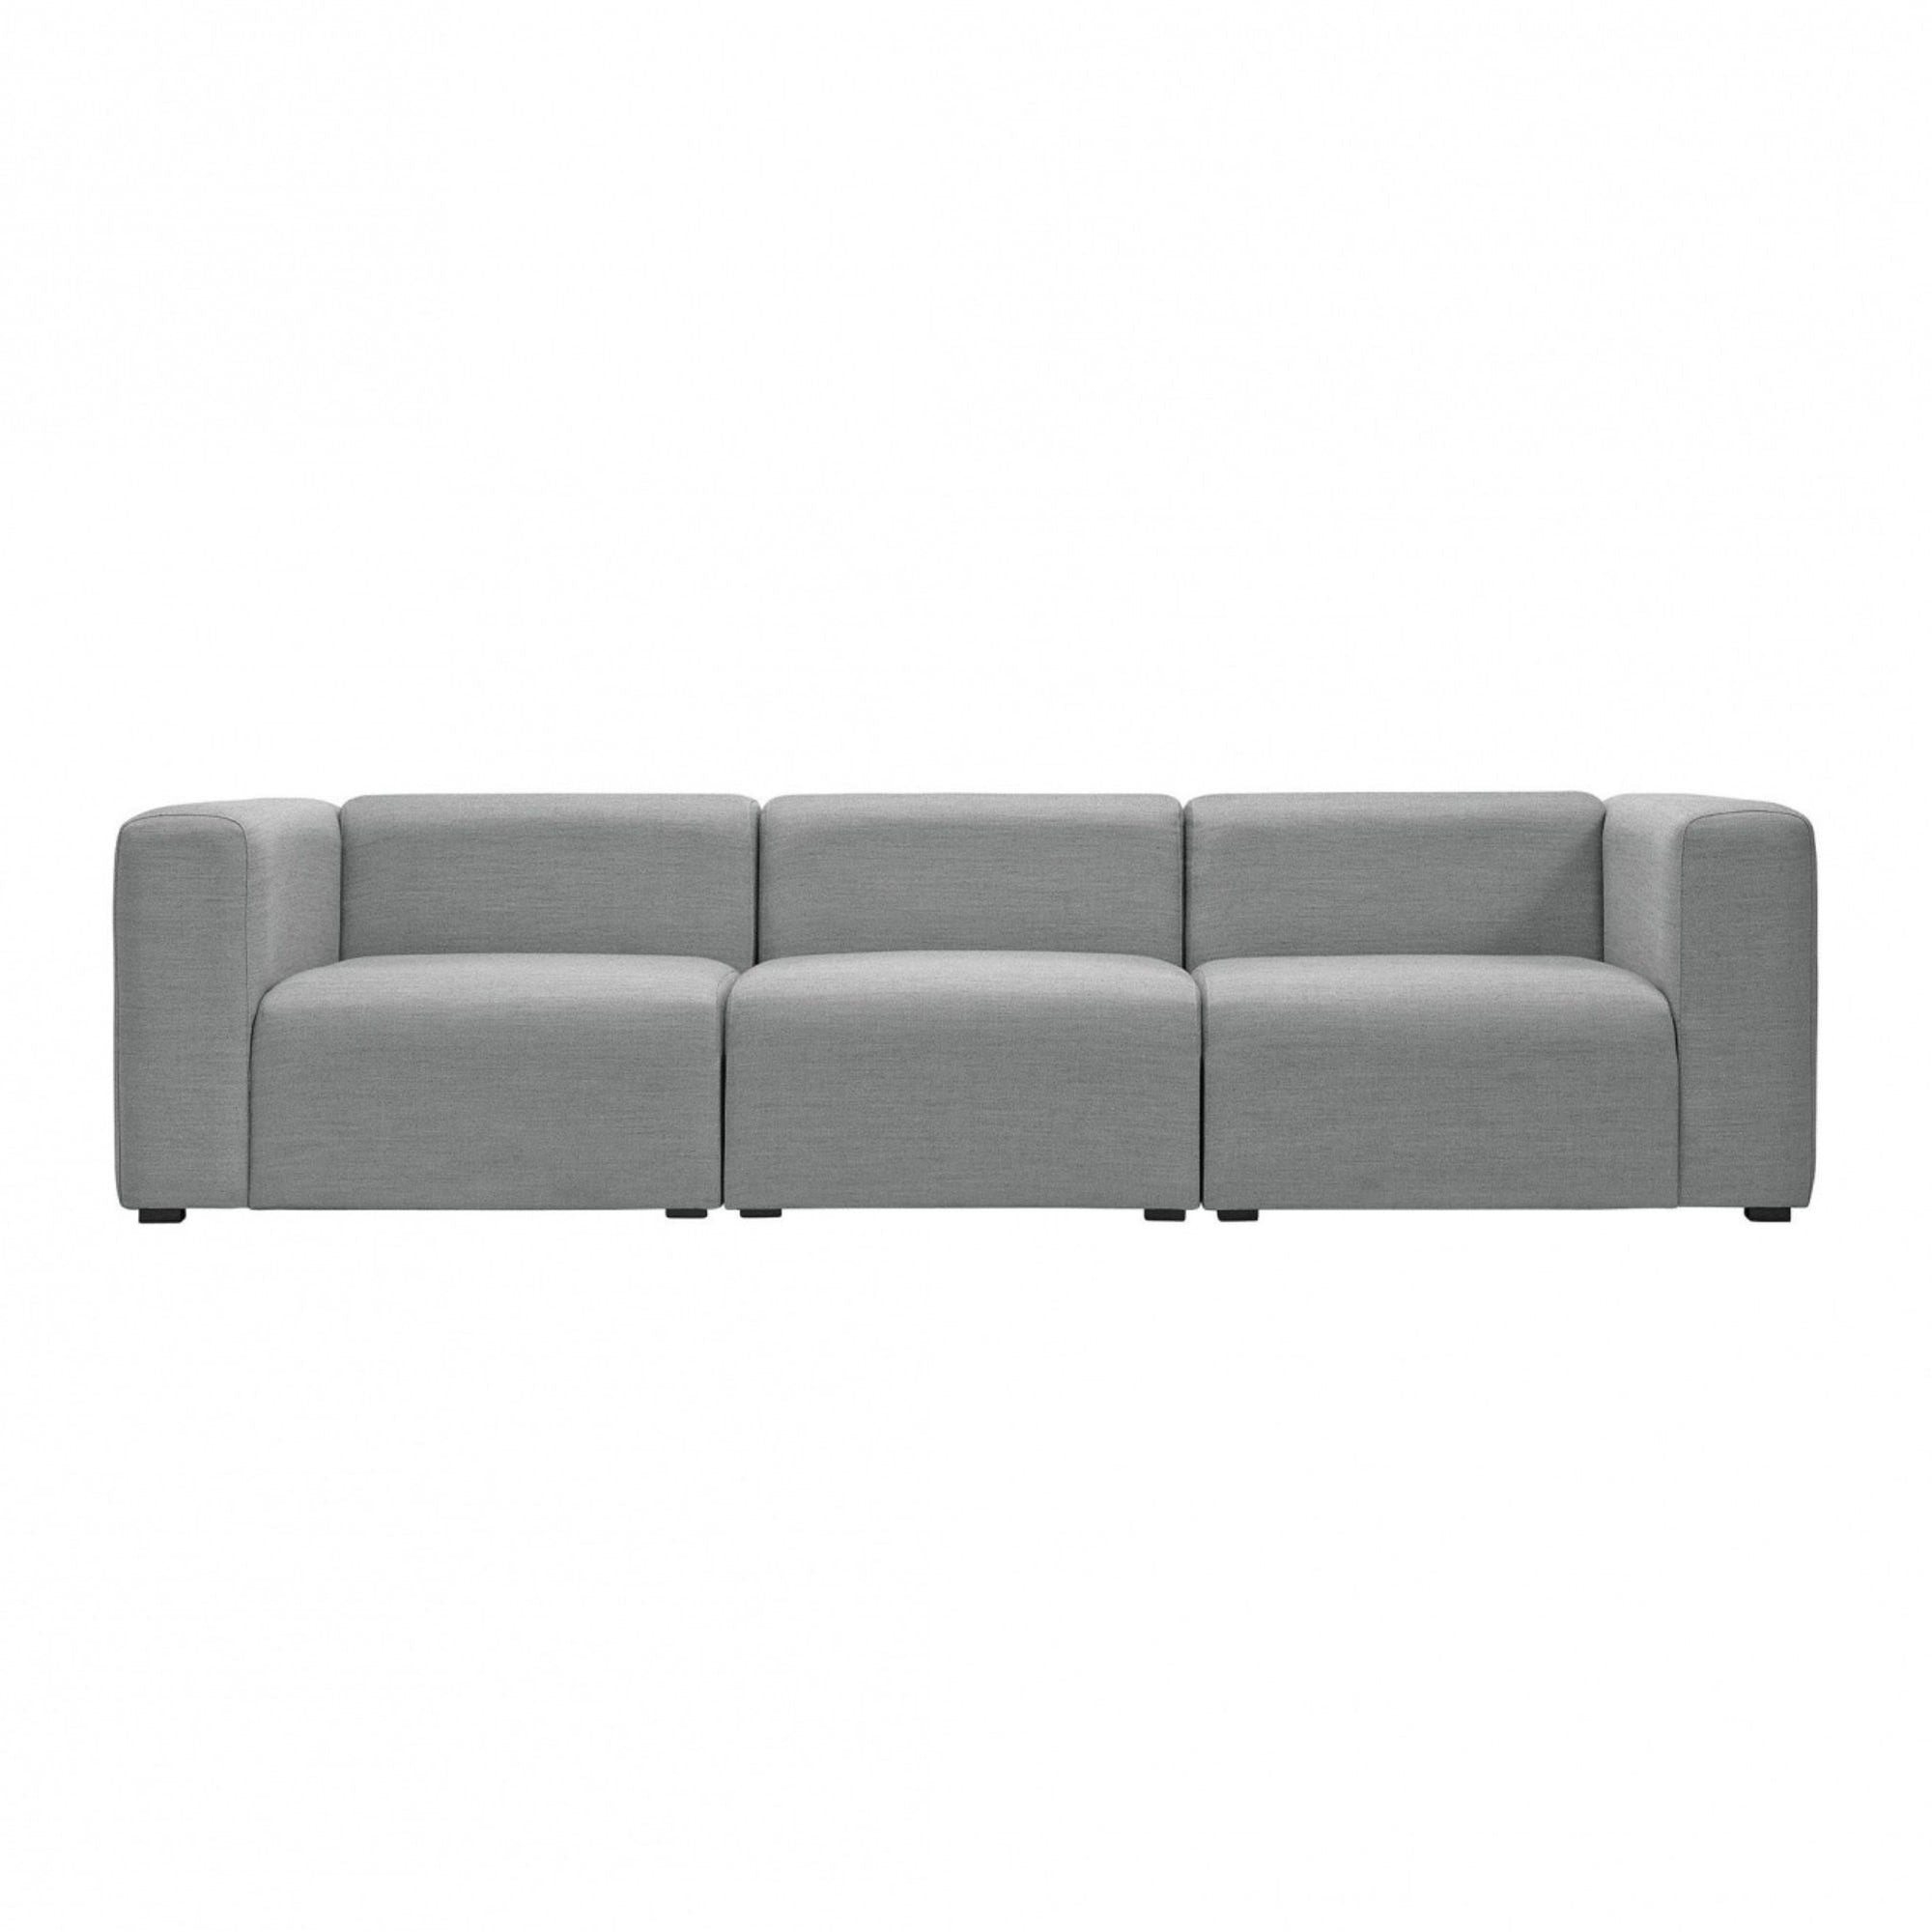 Hay Mags 3 seater sofa, surface by hay 120